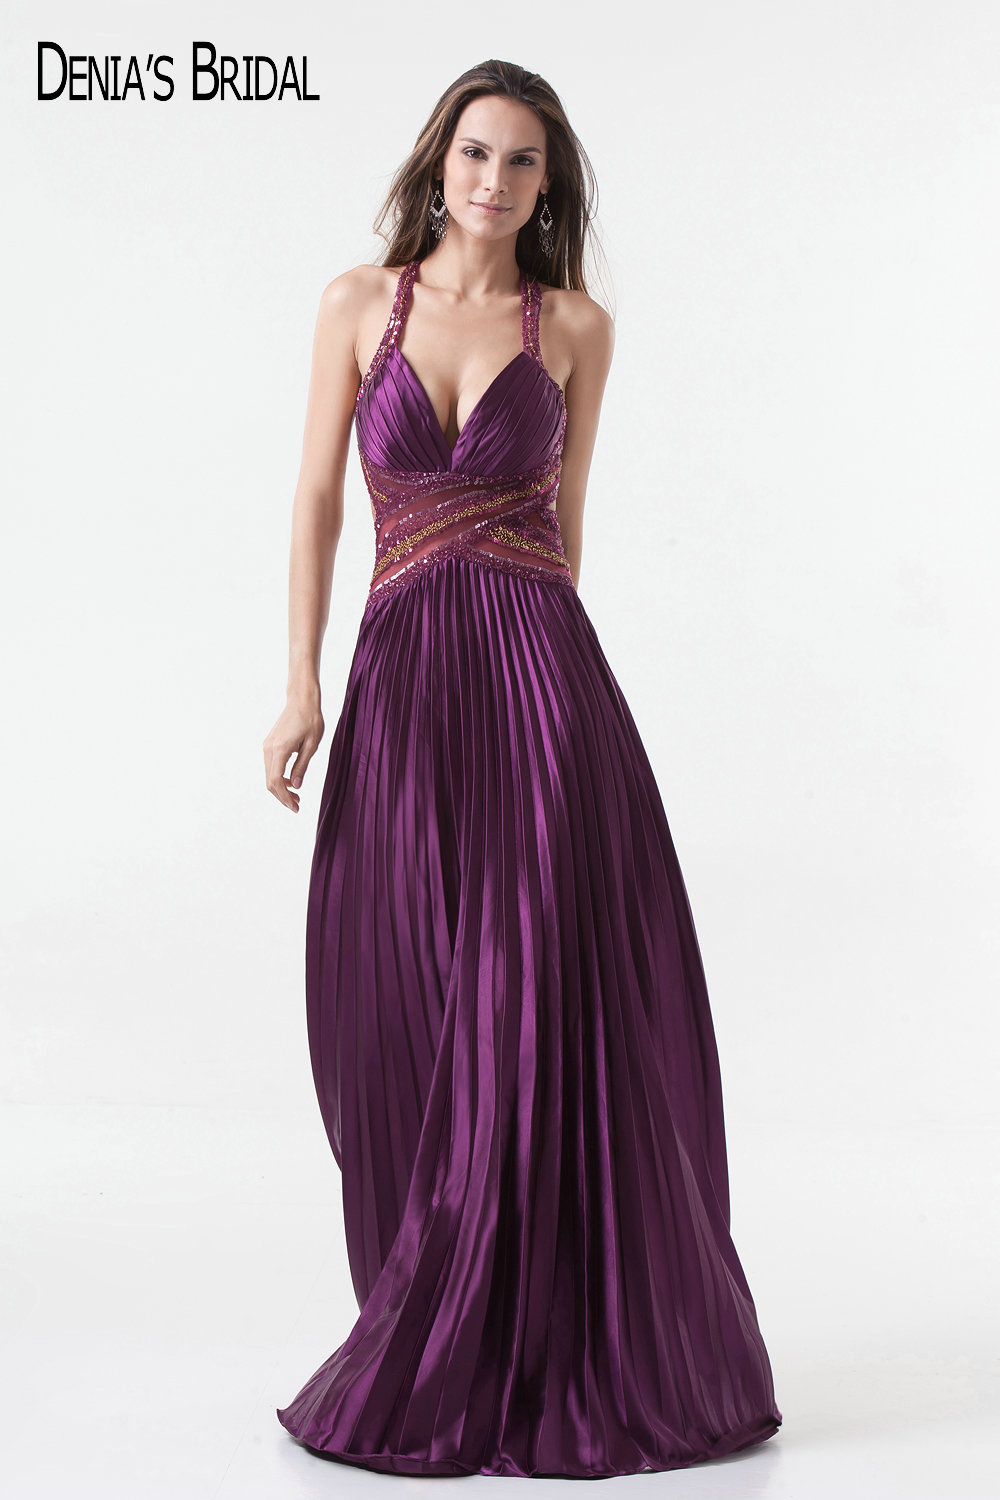 Compare Prices on Purple Evening Gowns- Online Shopping/Buy Low ...